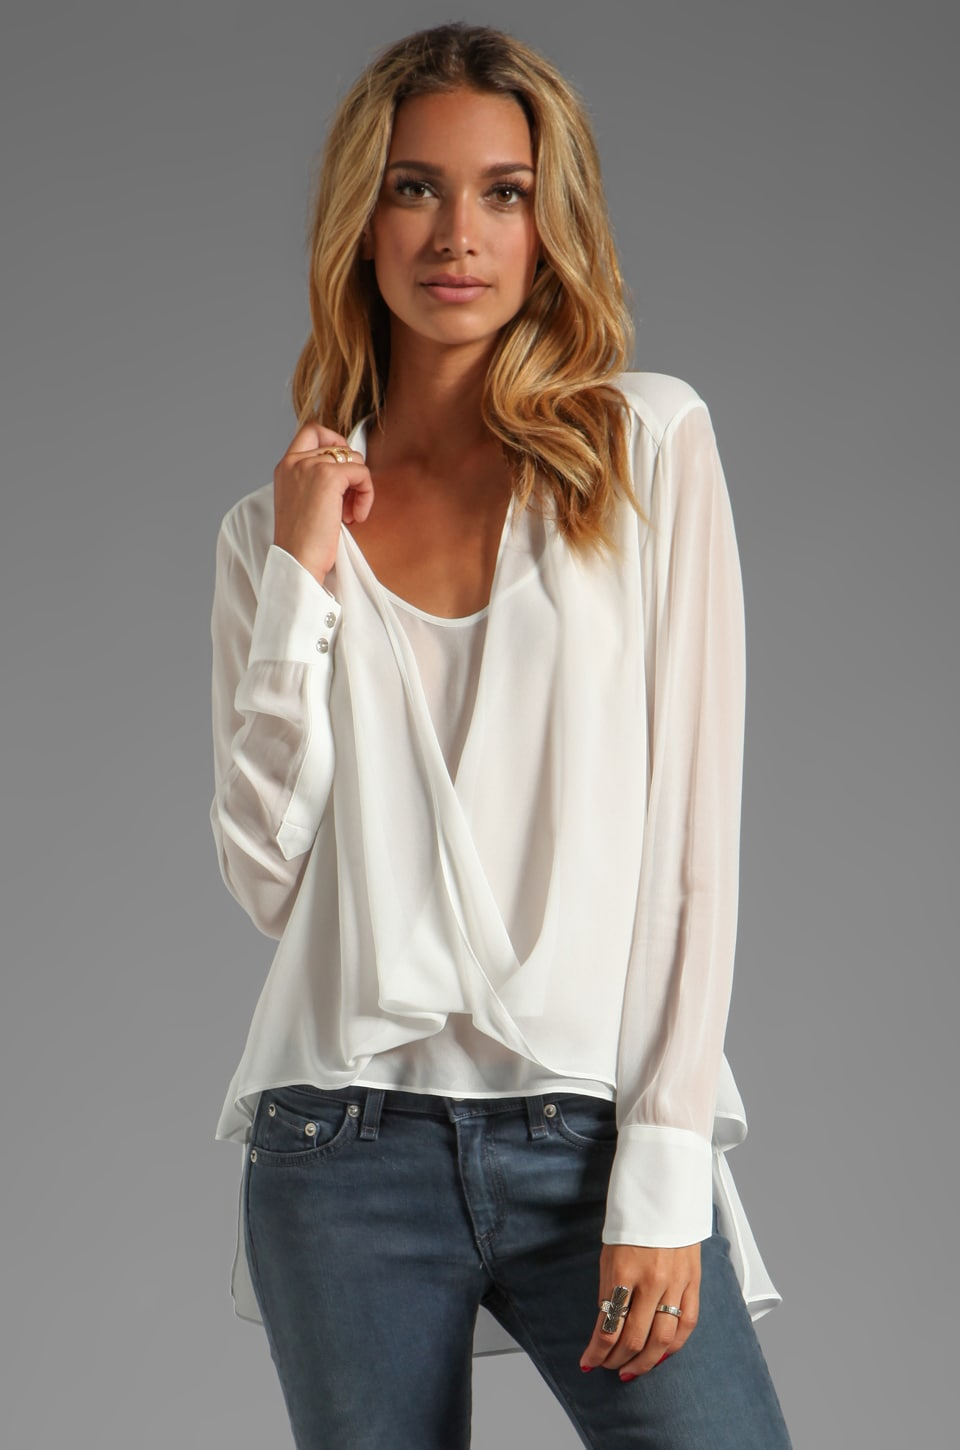 Wish Outshine Blouse in White